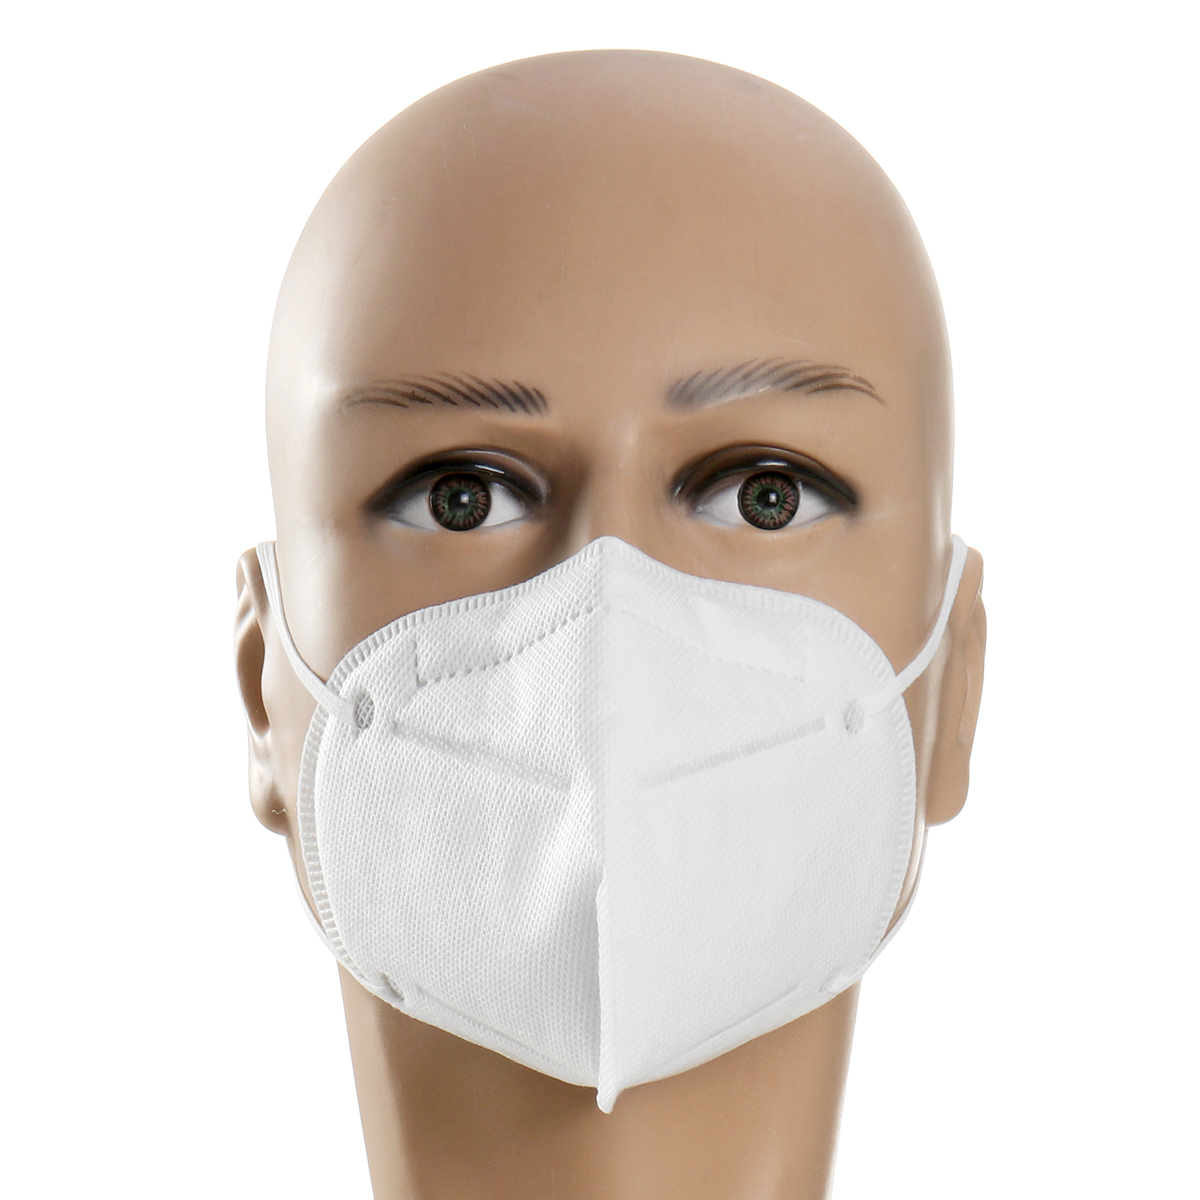 1Pcs N95 Mask Respirator Mask Air Filter Anti-Dust Anti Smog KN95 Masks Windproof Pm2.5 Safety Protective Mouth Face Mask 1